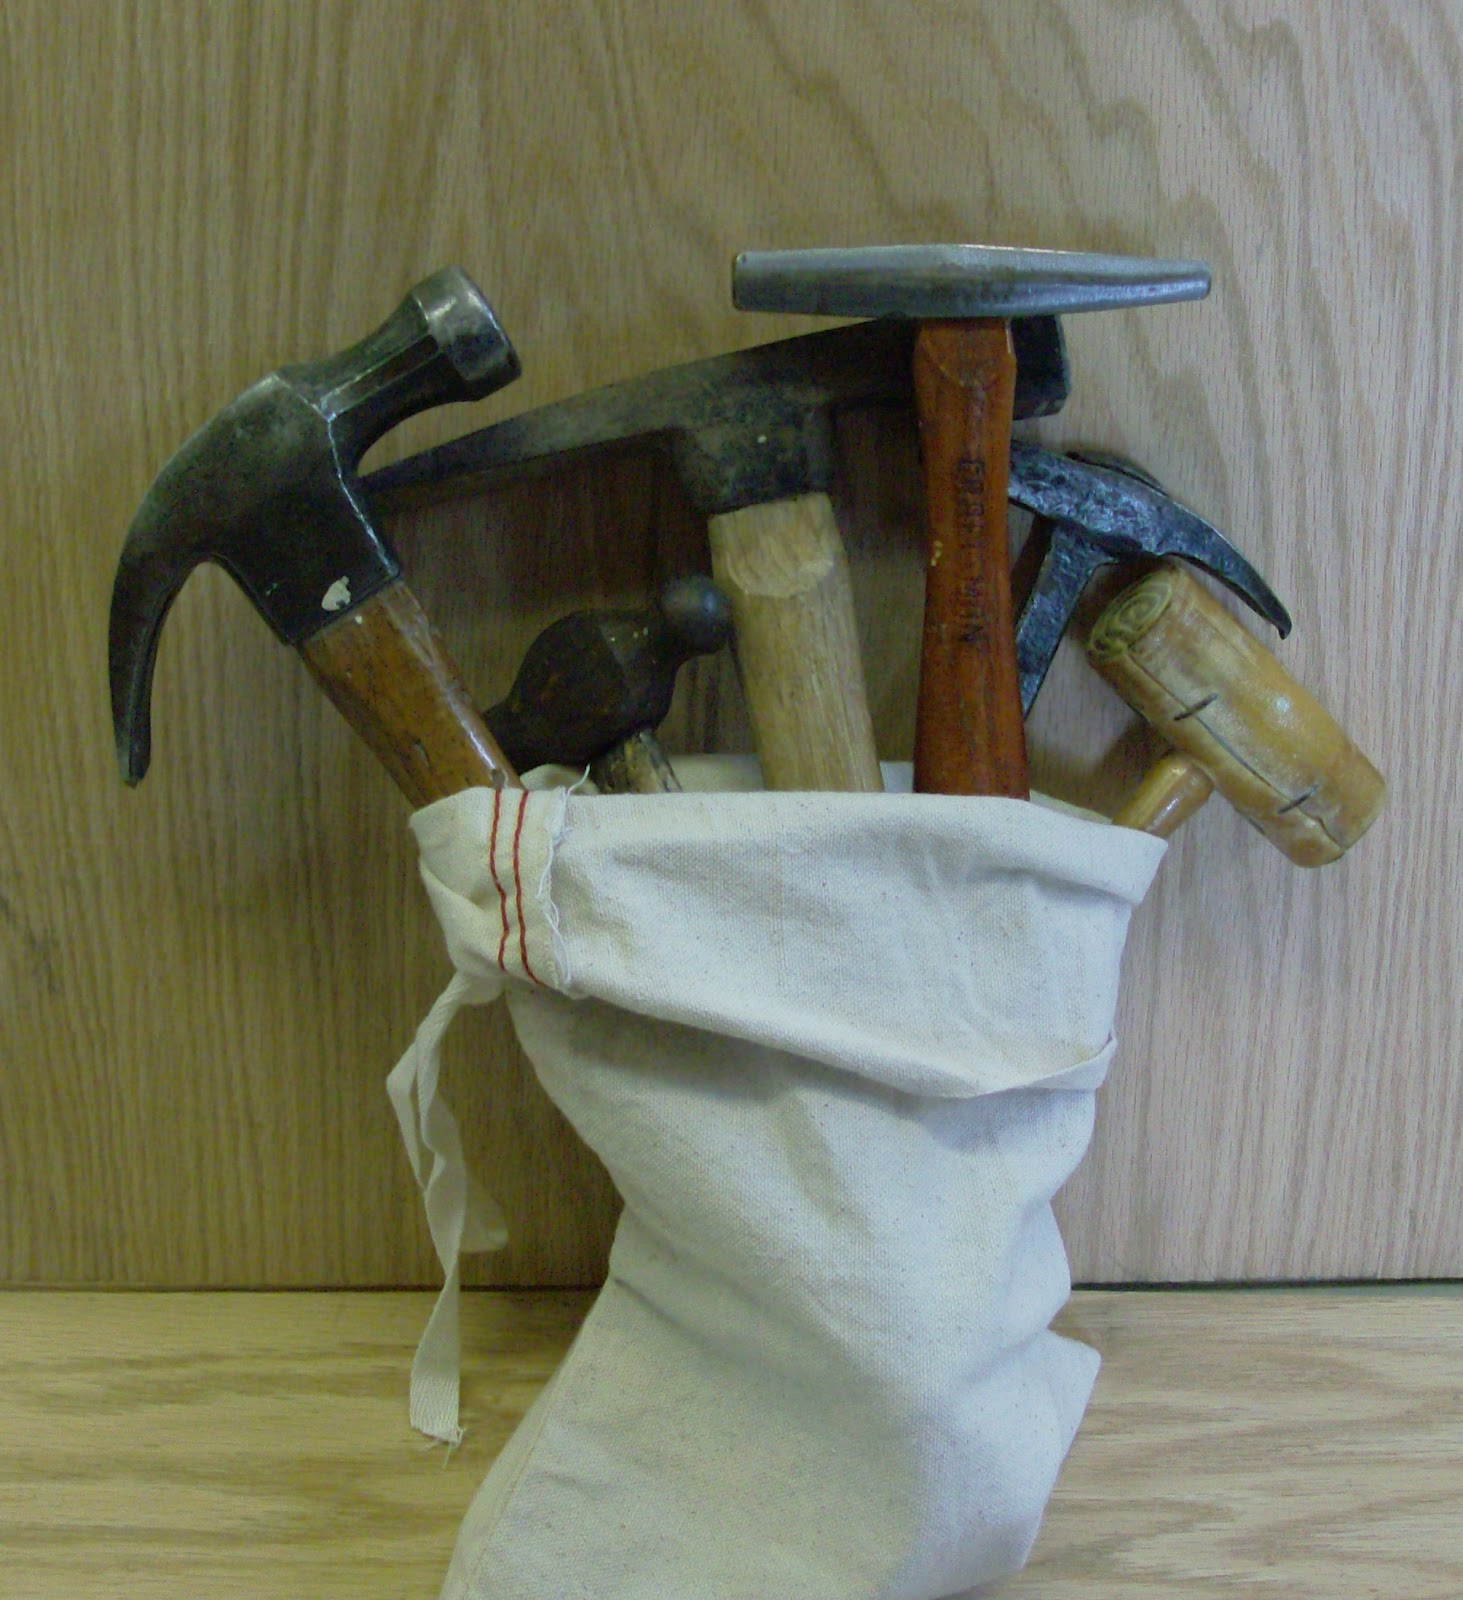 A Bag of Hammers  Wikipedia